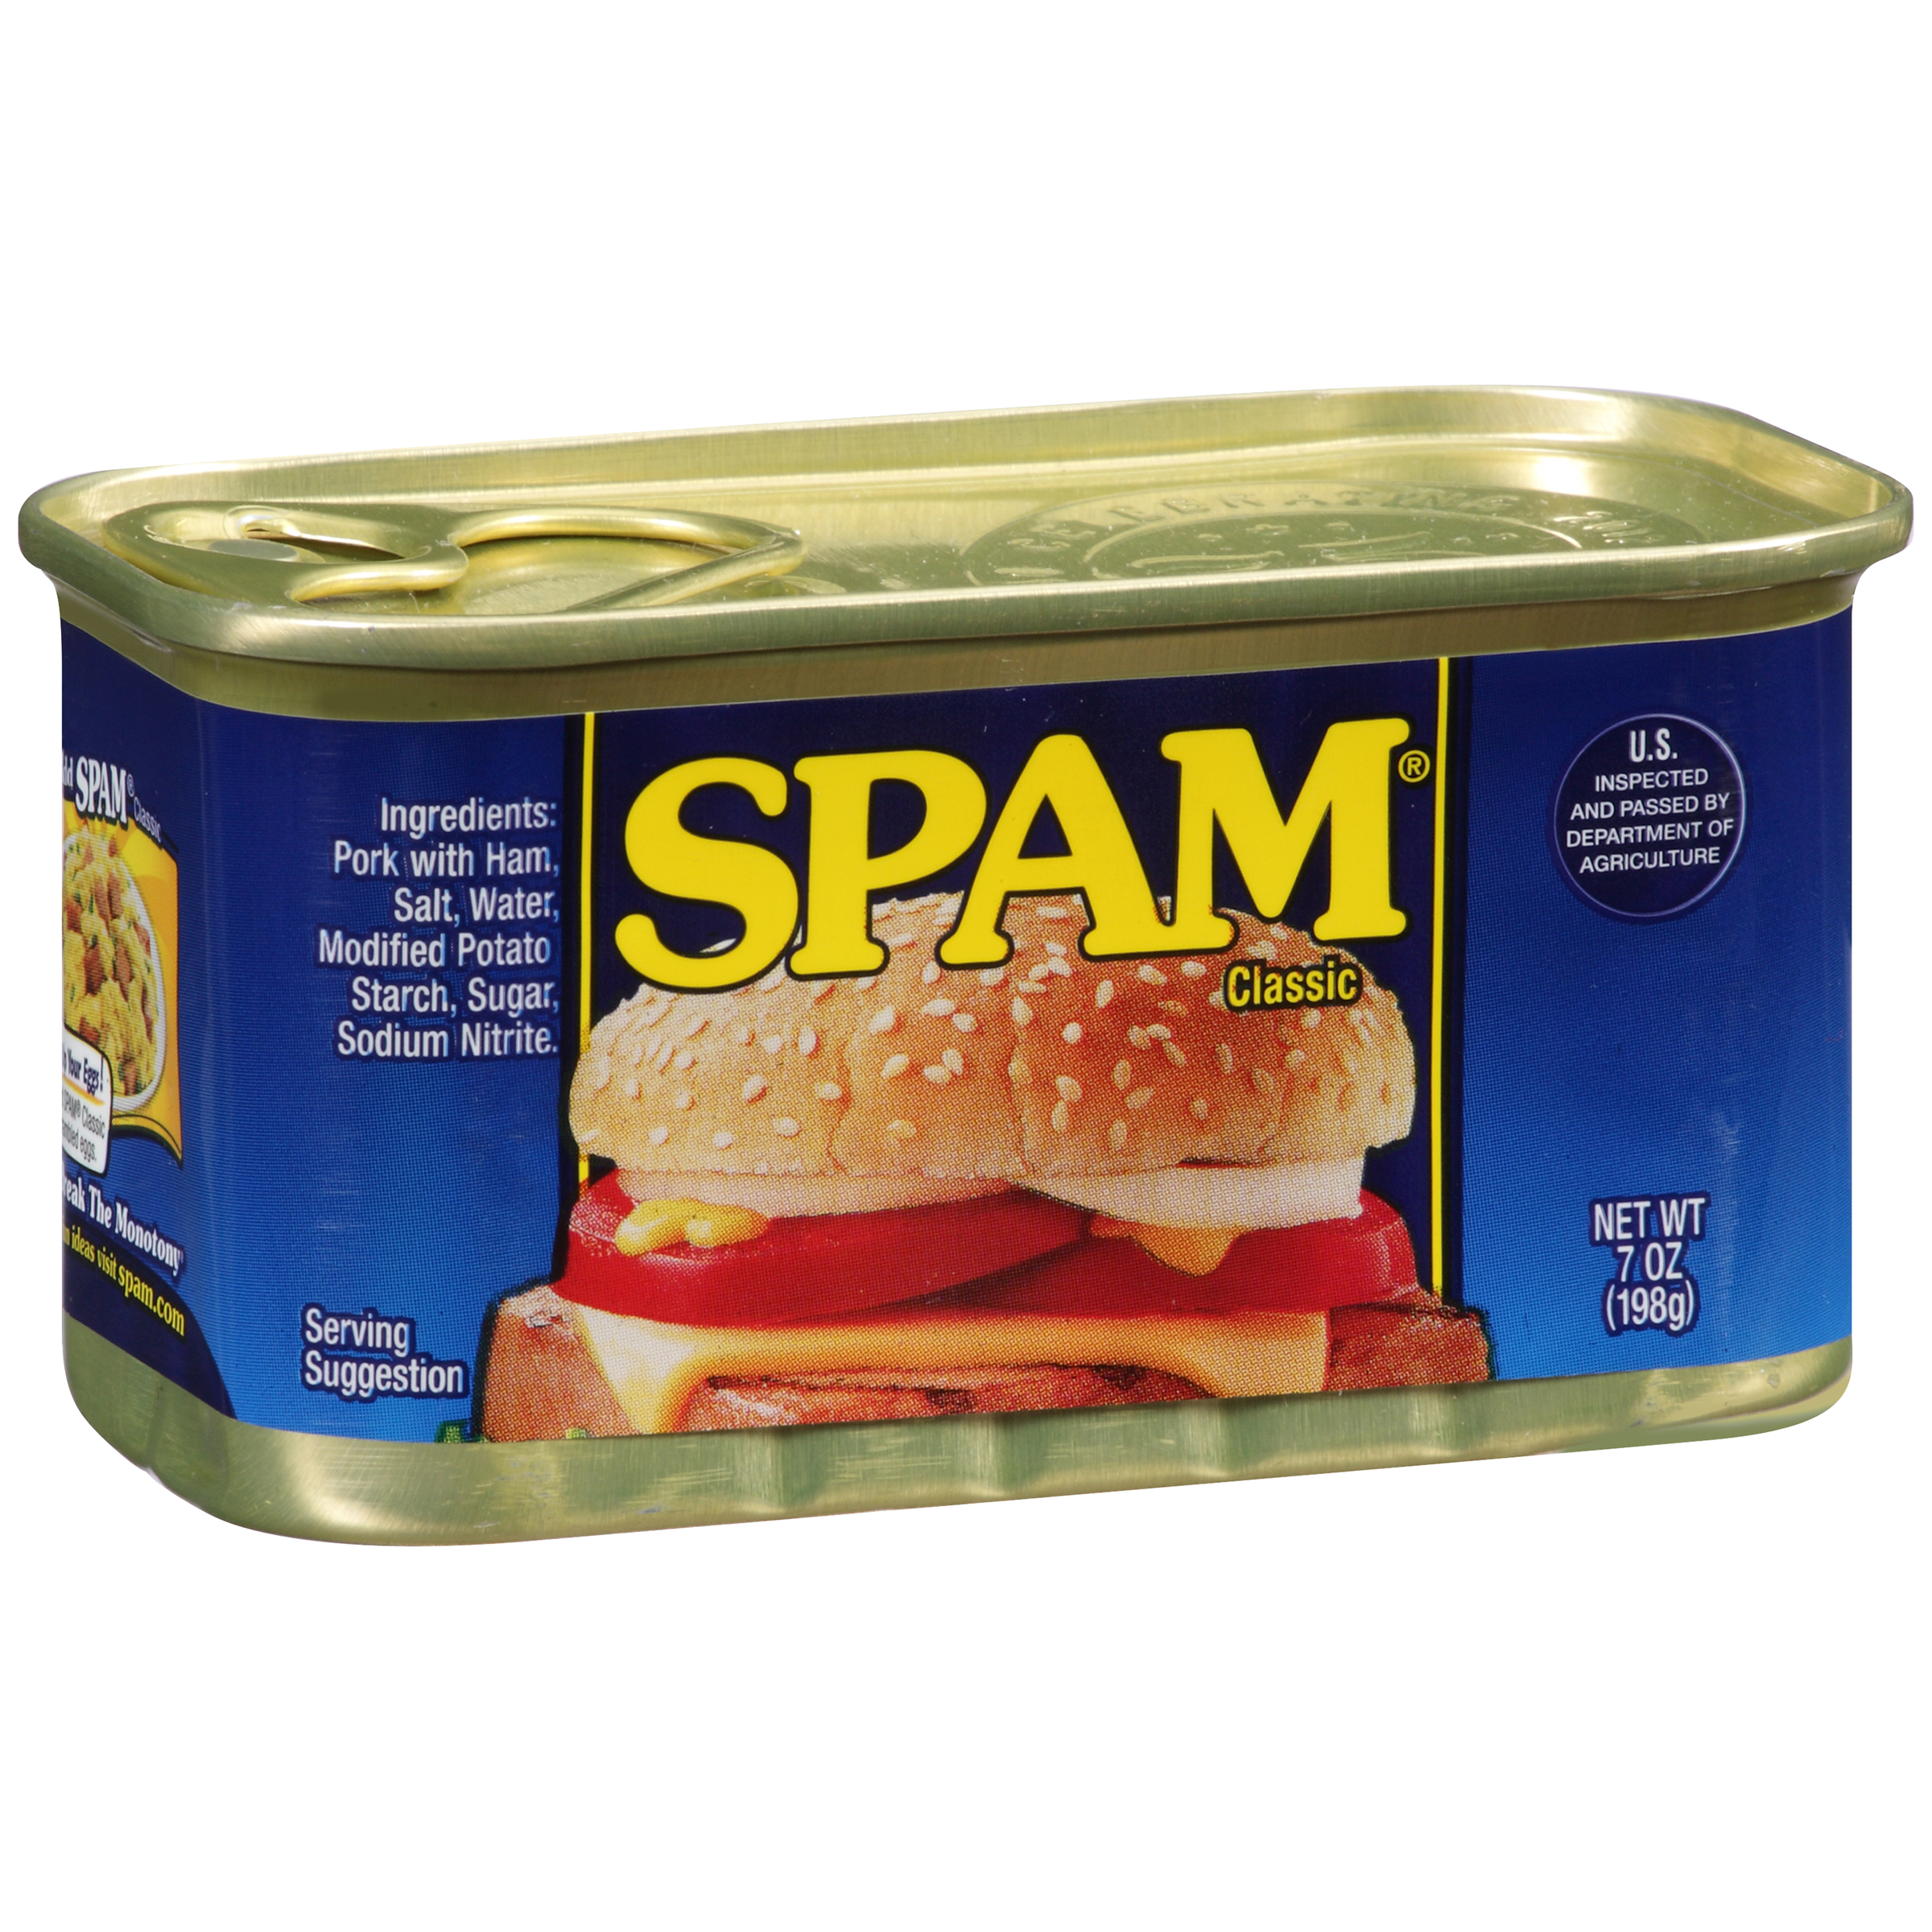 SPAM Classic Canned Meat 7 oz. Can by Hormel